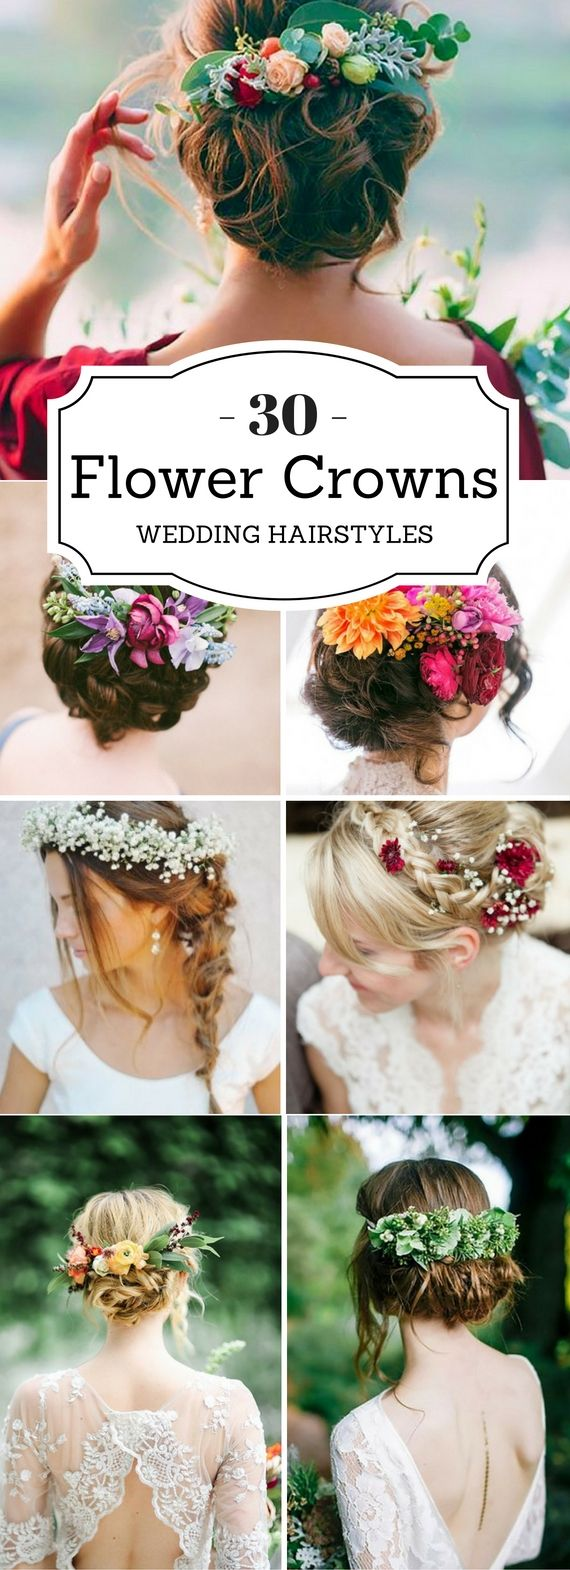 These Wedding Hairstyles With Flower Crowns are simply the BEST! So love how pretty and elegant these hairstyles are. I'm sure they'll go well...